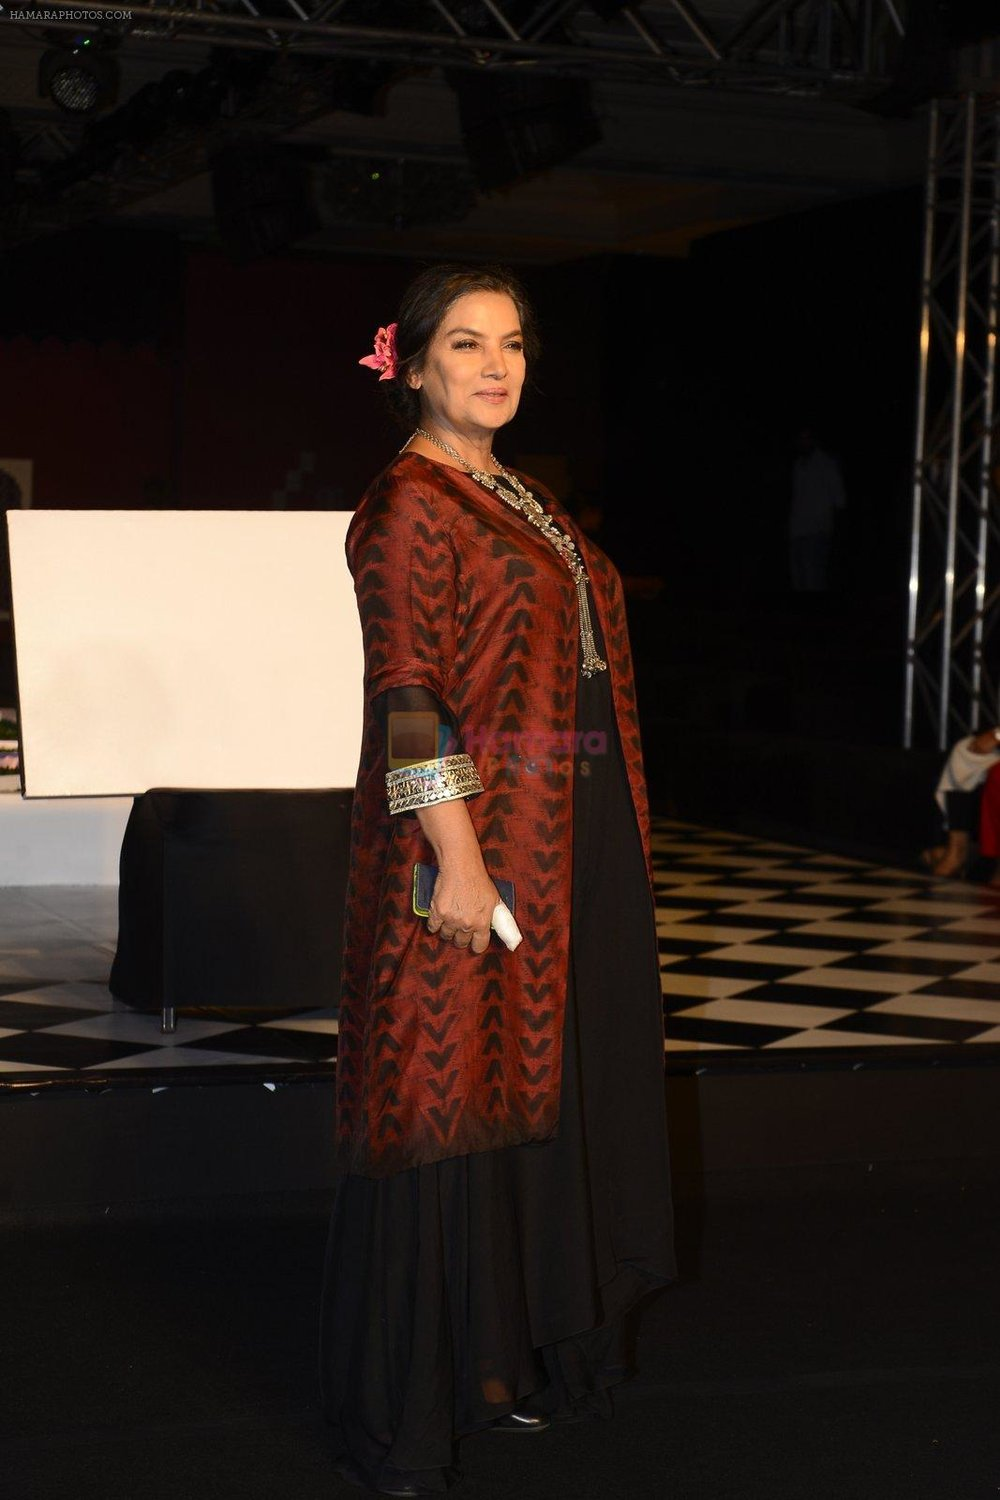 Shabana Azmi walk the ramp for Anita Dongre show at the FDCI India Couture Week 2016 on 21st July 2016 shown to user